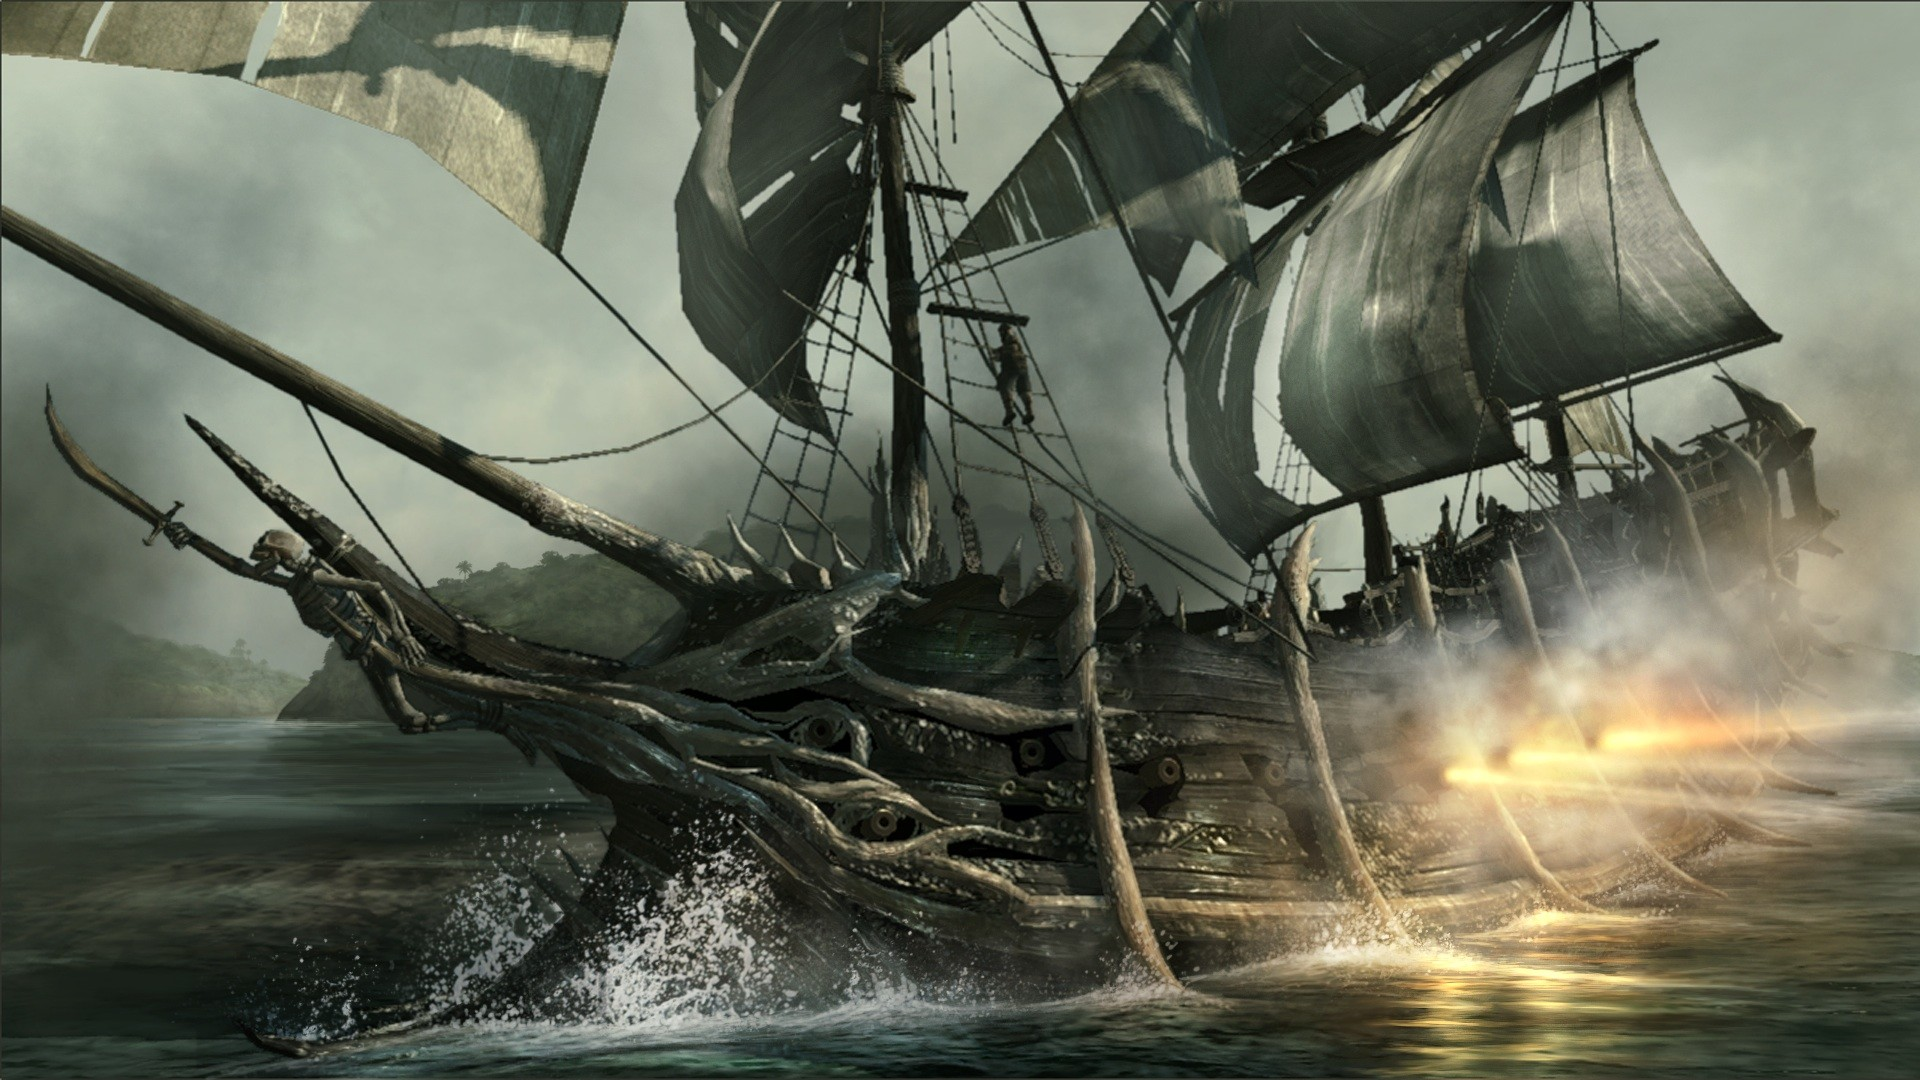 Pirate Ship HD Wallpapers Backgrounds Wallpaper   HD Wallpapers   Pinterest    Pirate ships, Wallpaper and Wallpaper backgrounds